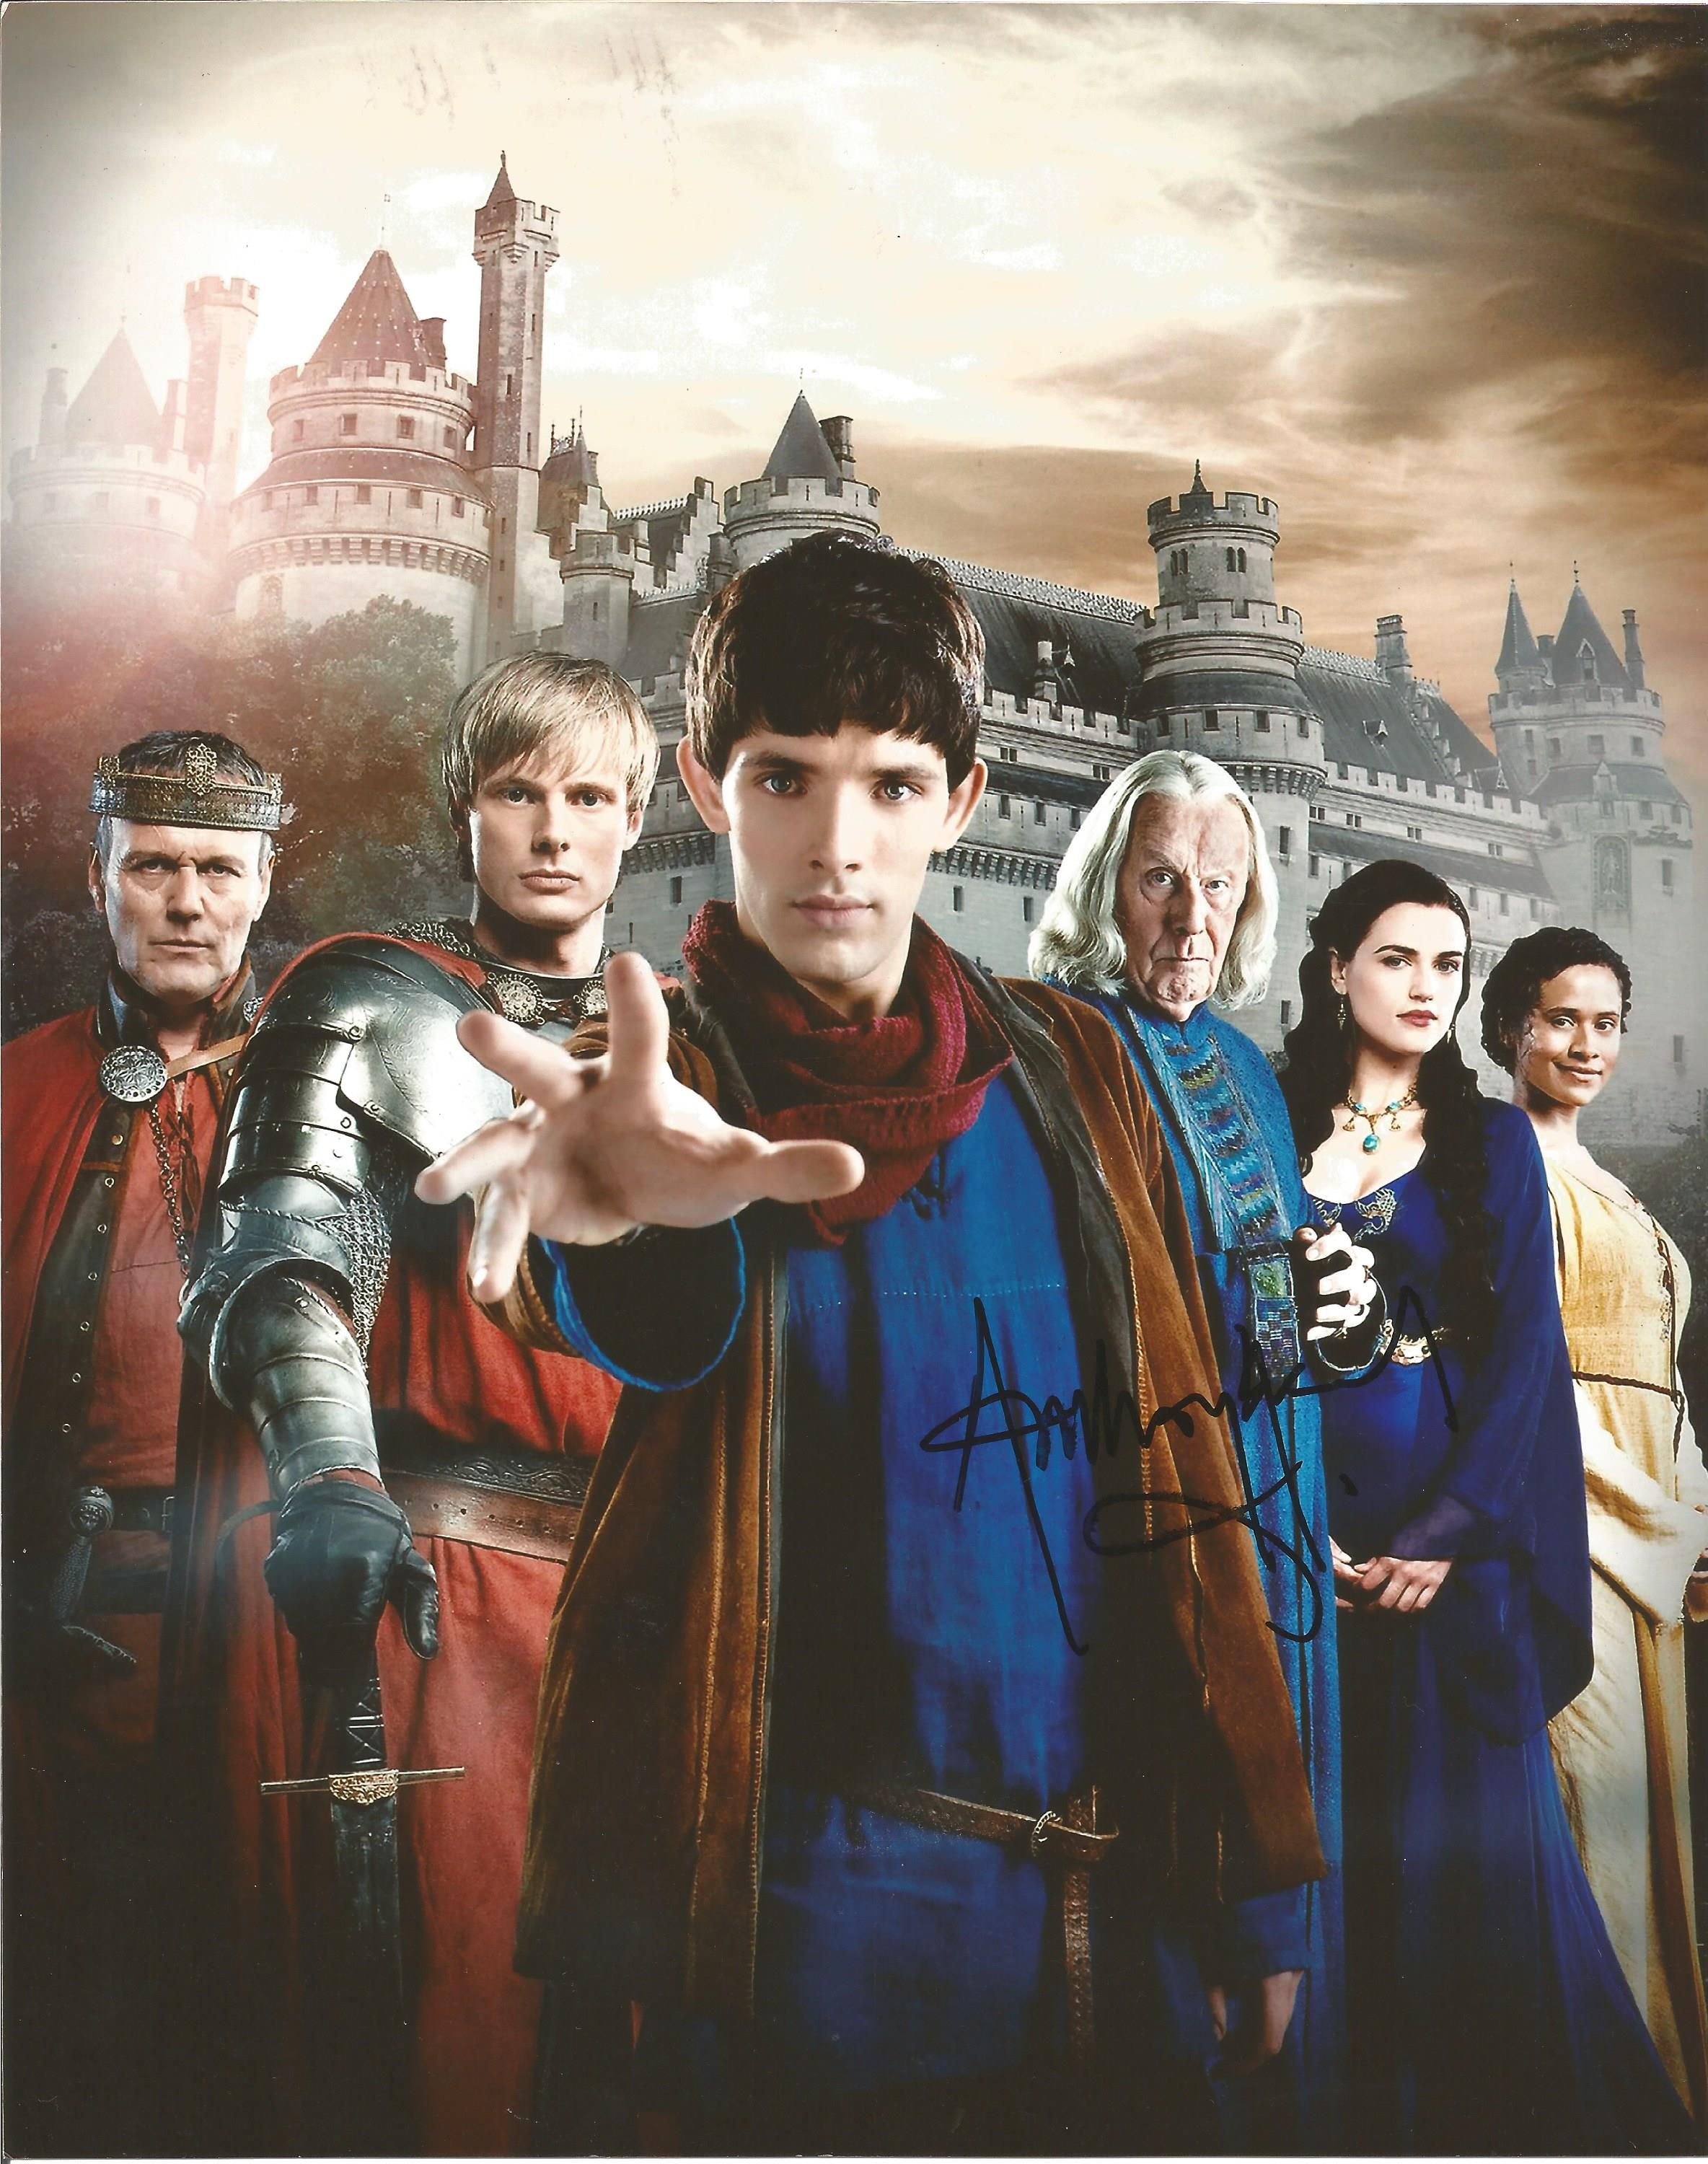 Lot 14 - Anthony Head signed 10 x 8 colour Merlin Portrait Photo, from in person collection autographed at